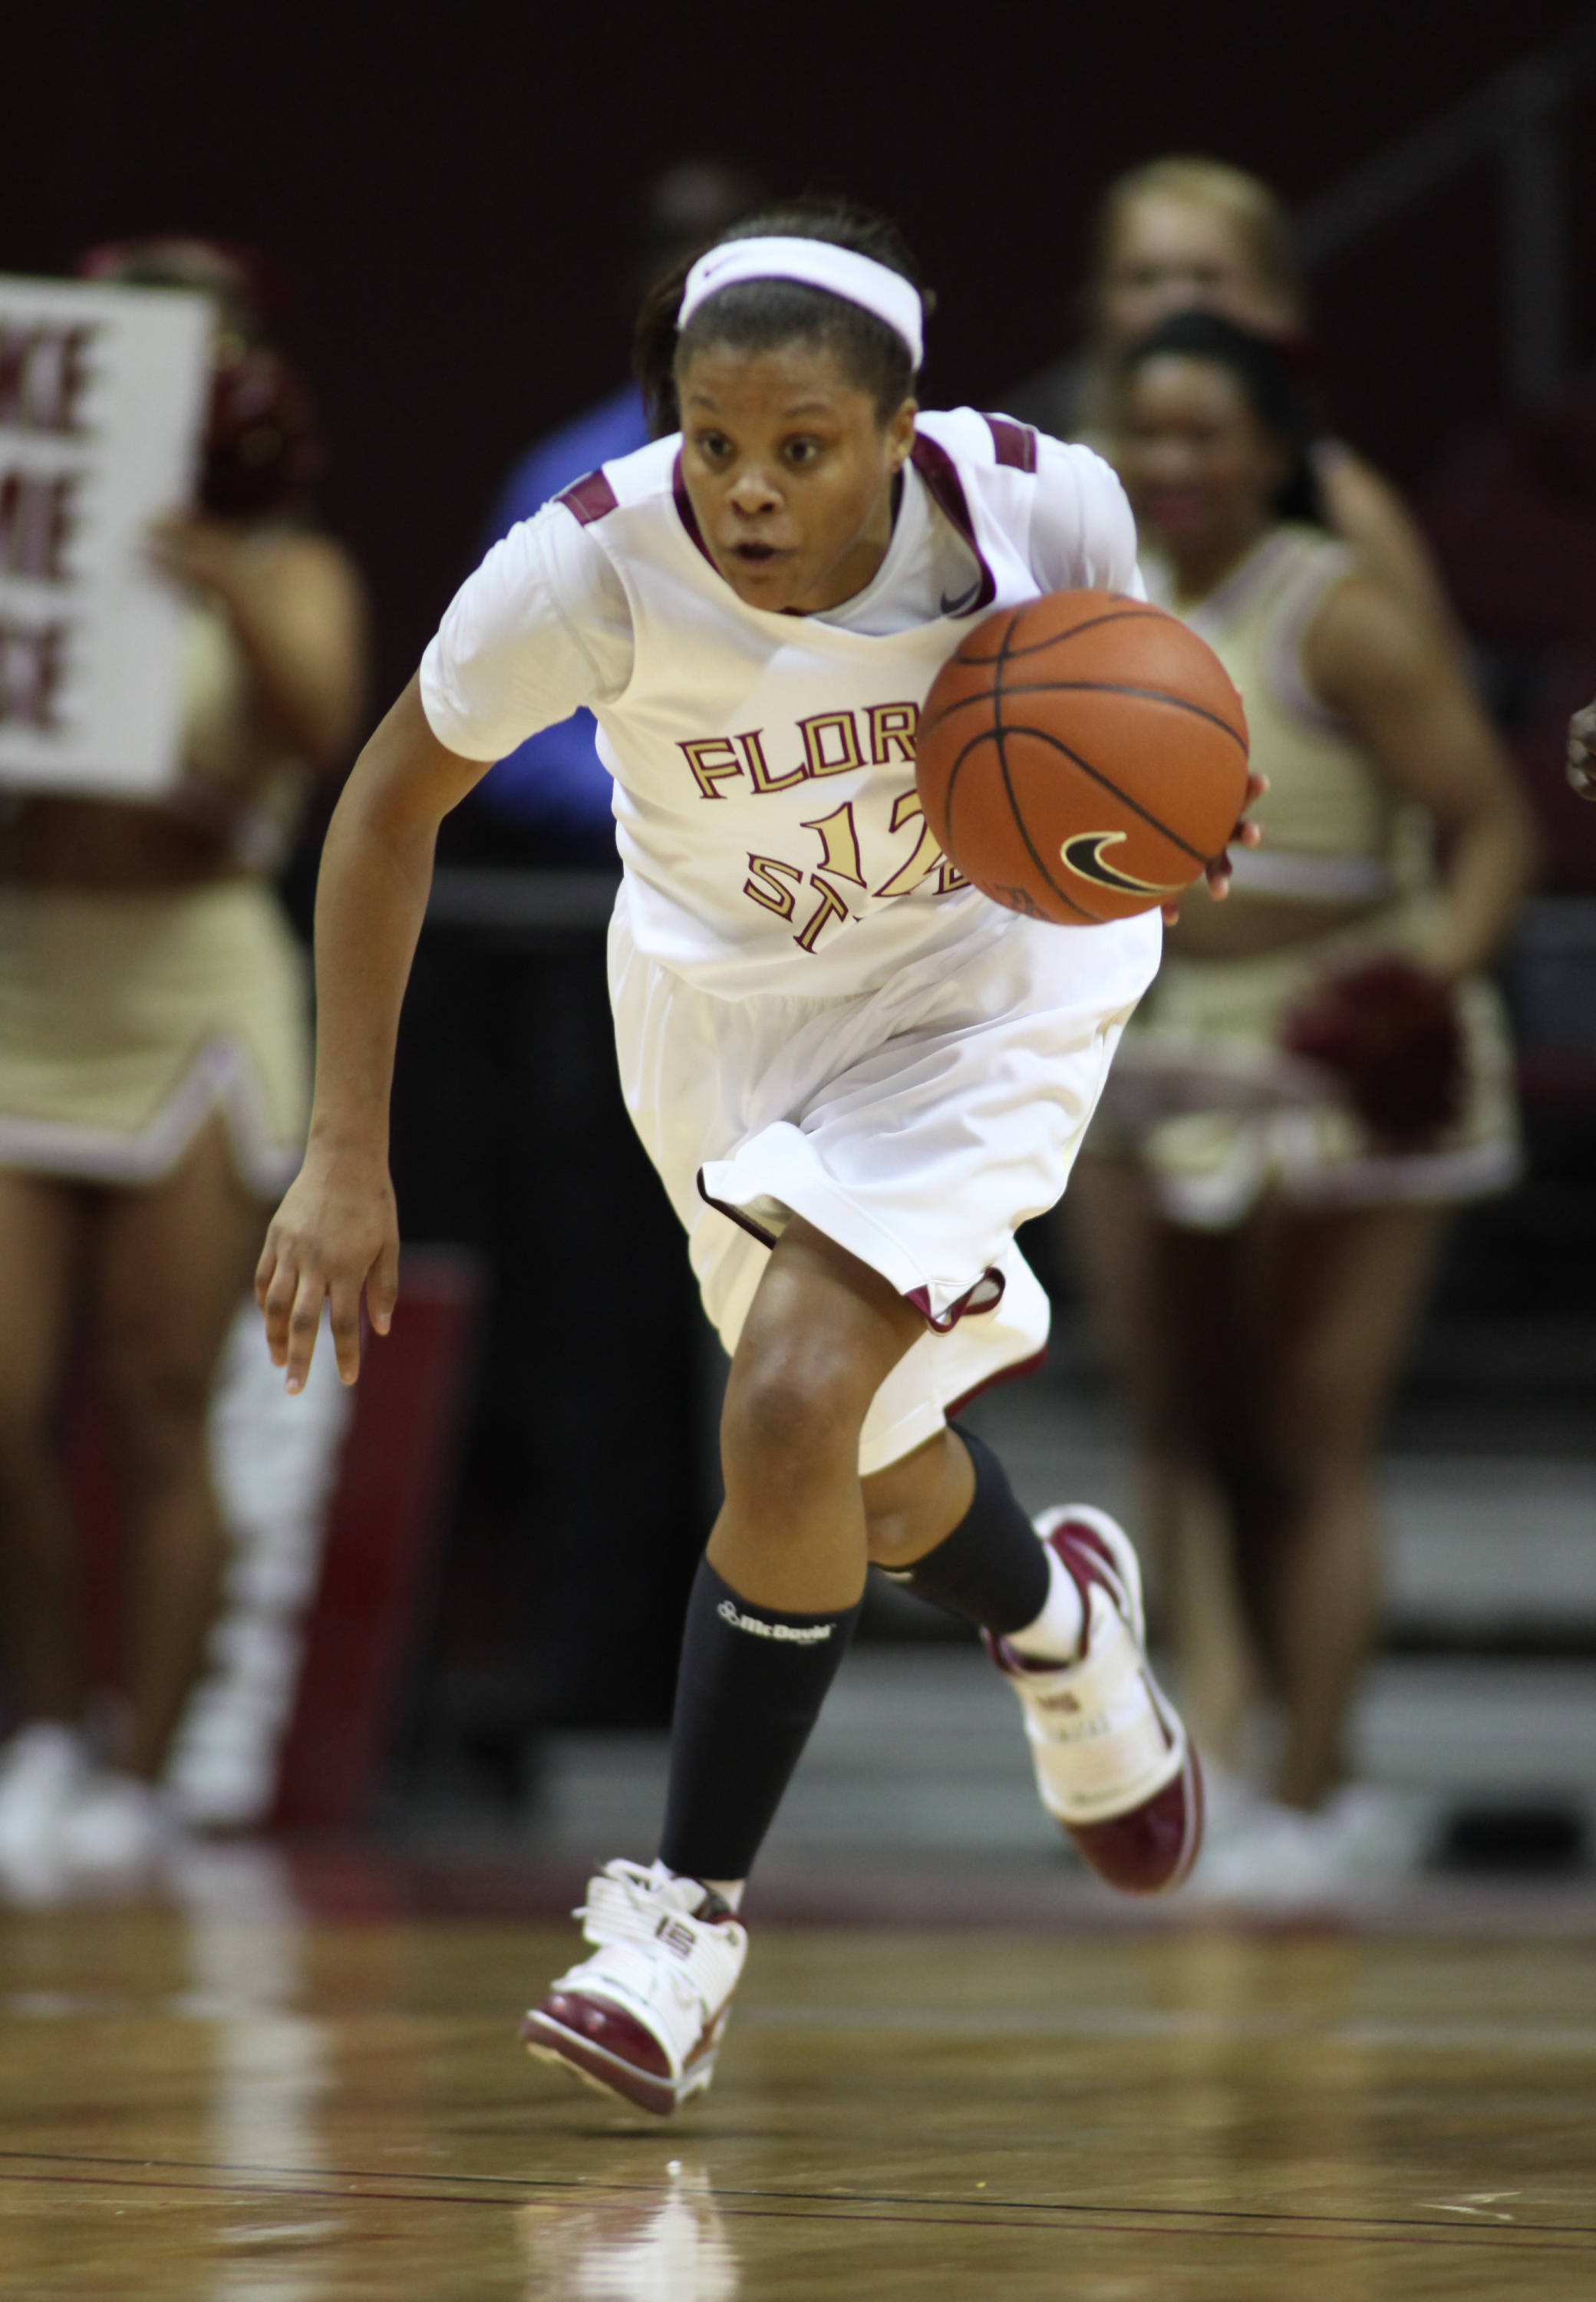 August 22 ... Courtney Ward has blossomed and grown as a player in each of her three years at FSU. Now, in her fourth and final season, the 'Noles' floor leader has become one of the top point guards in all of college basketball.